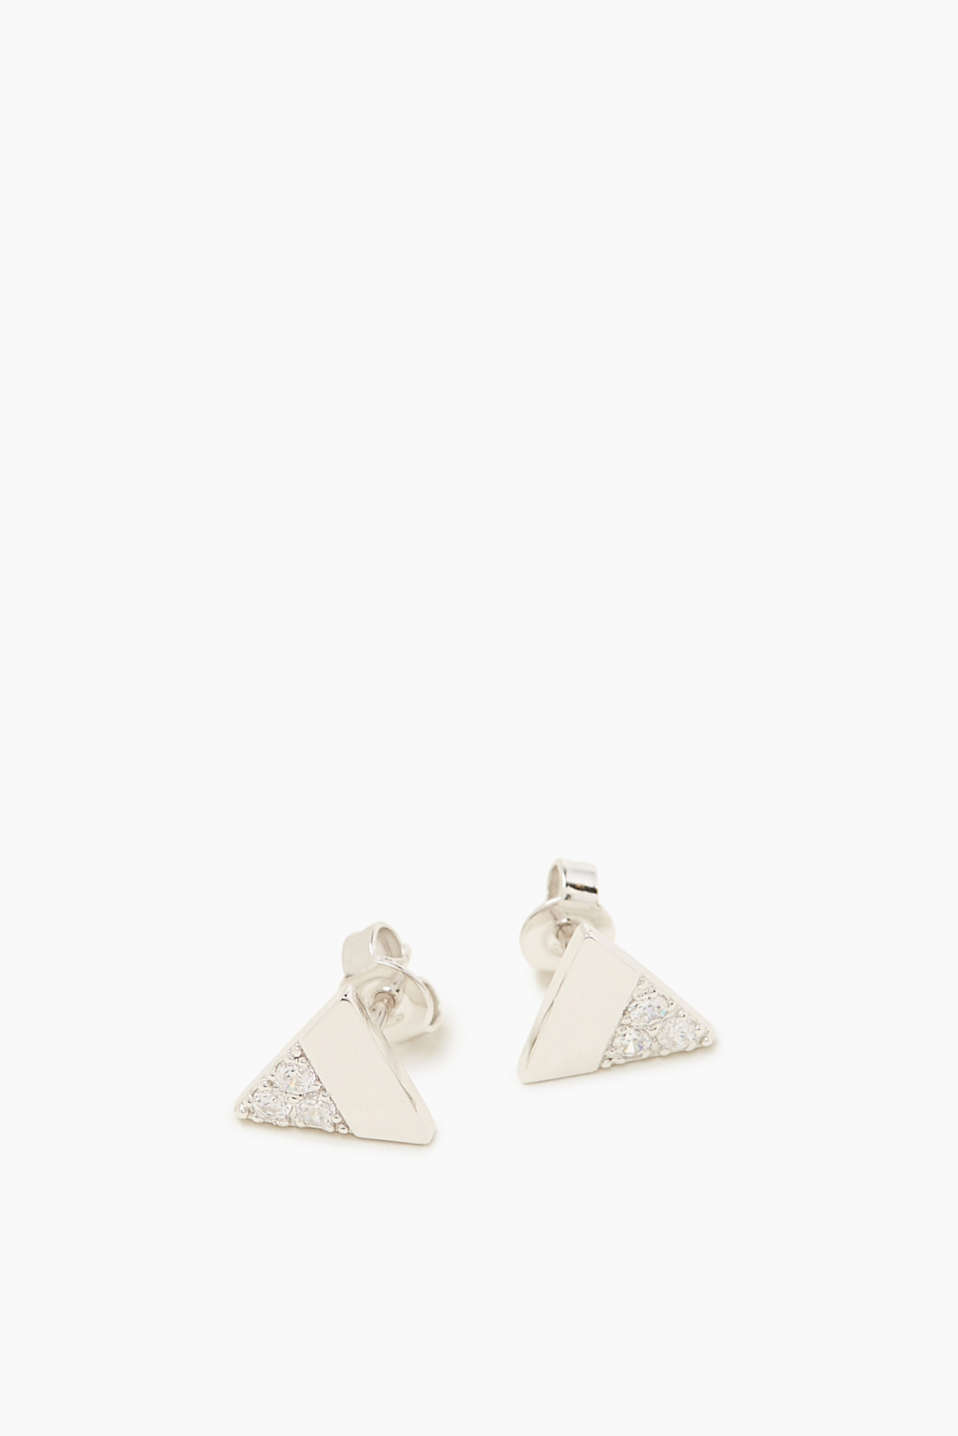 Stud earrings in sterling silver with zirconia